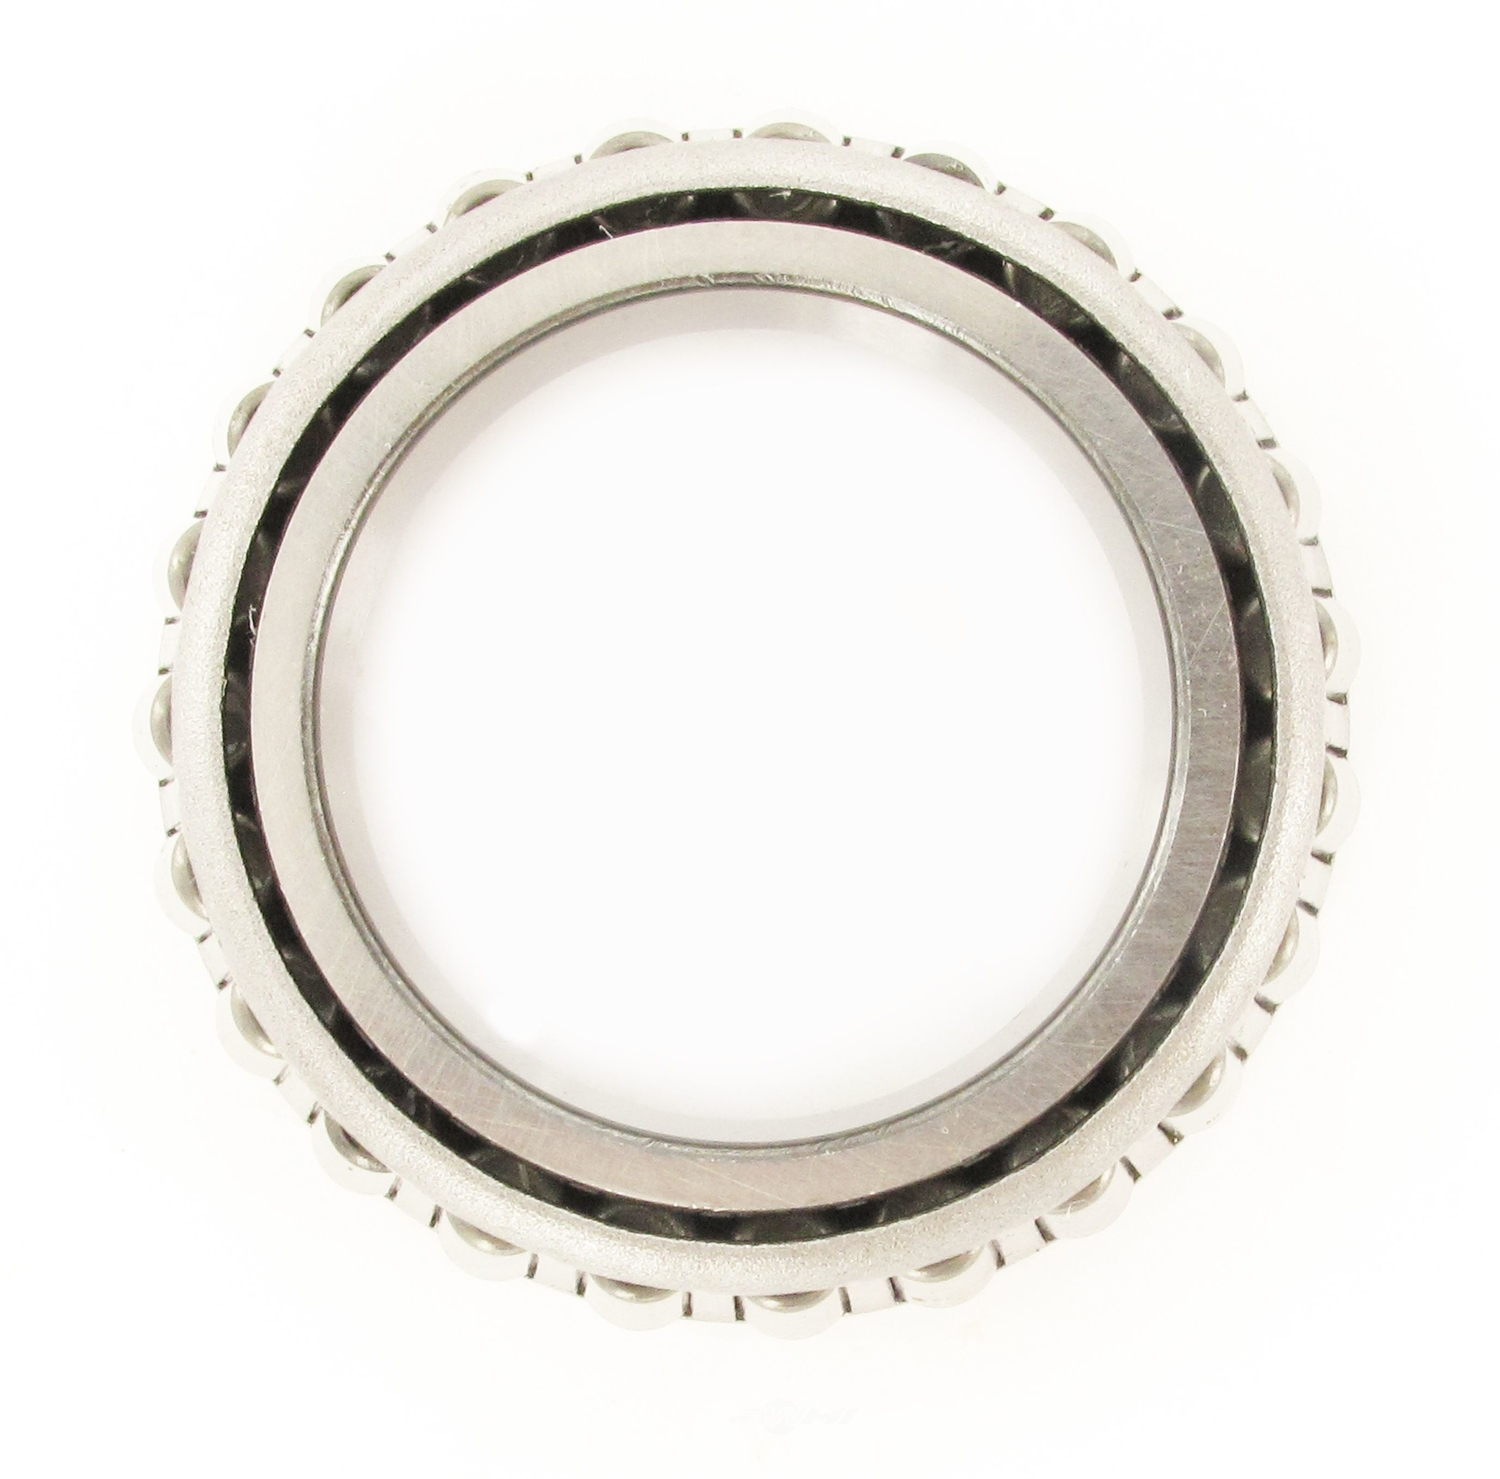 SKF (CHICAGO RAWHIDE) - Axle Differential Bearing - SKF L68149 VP